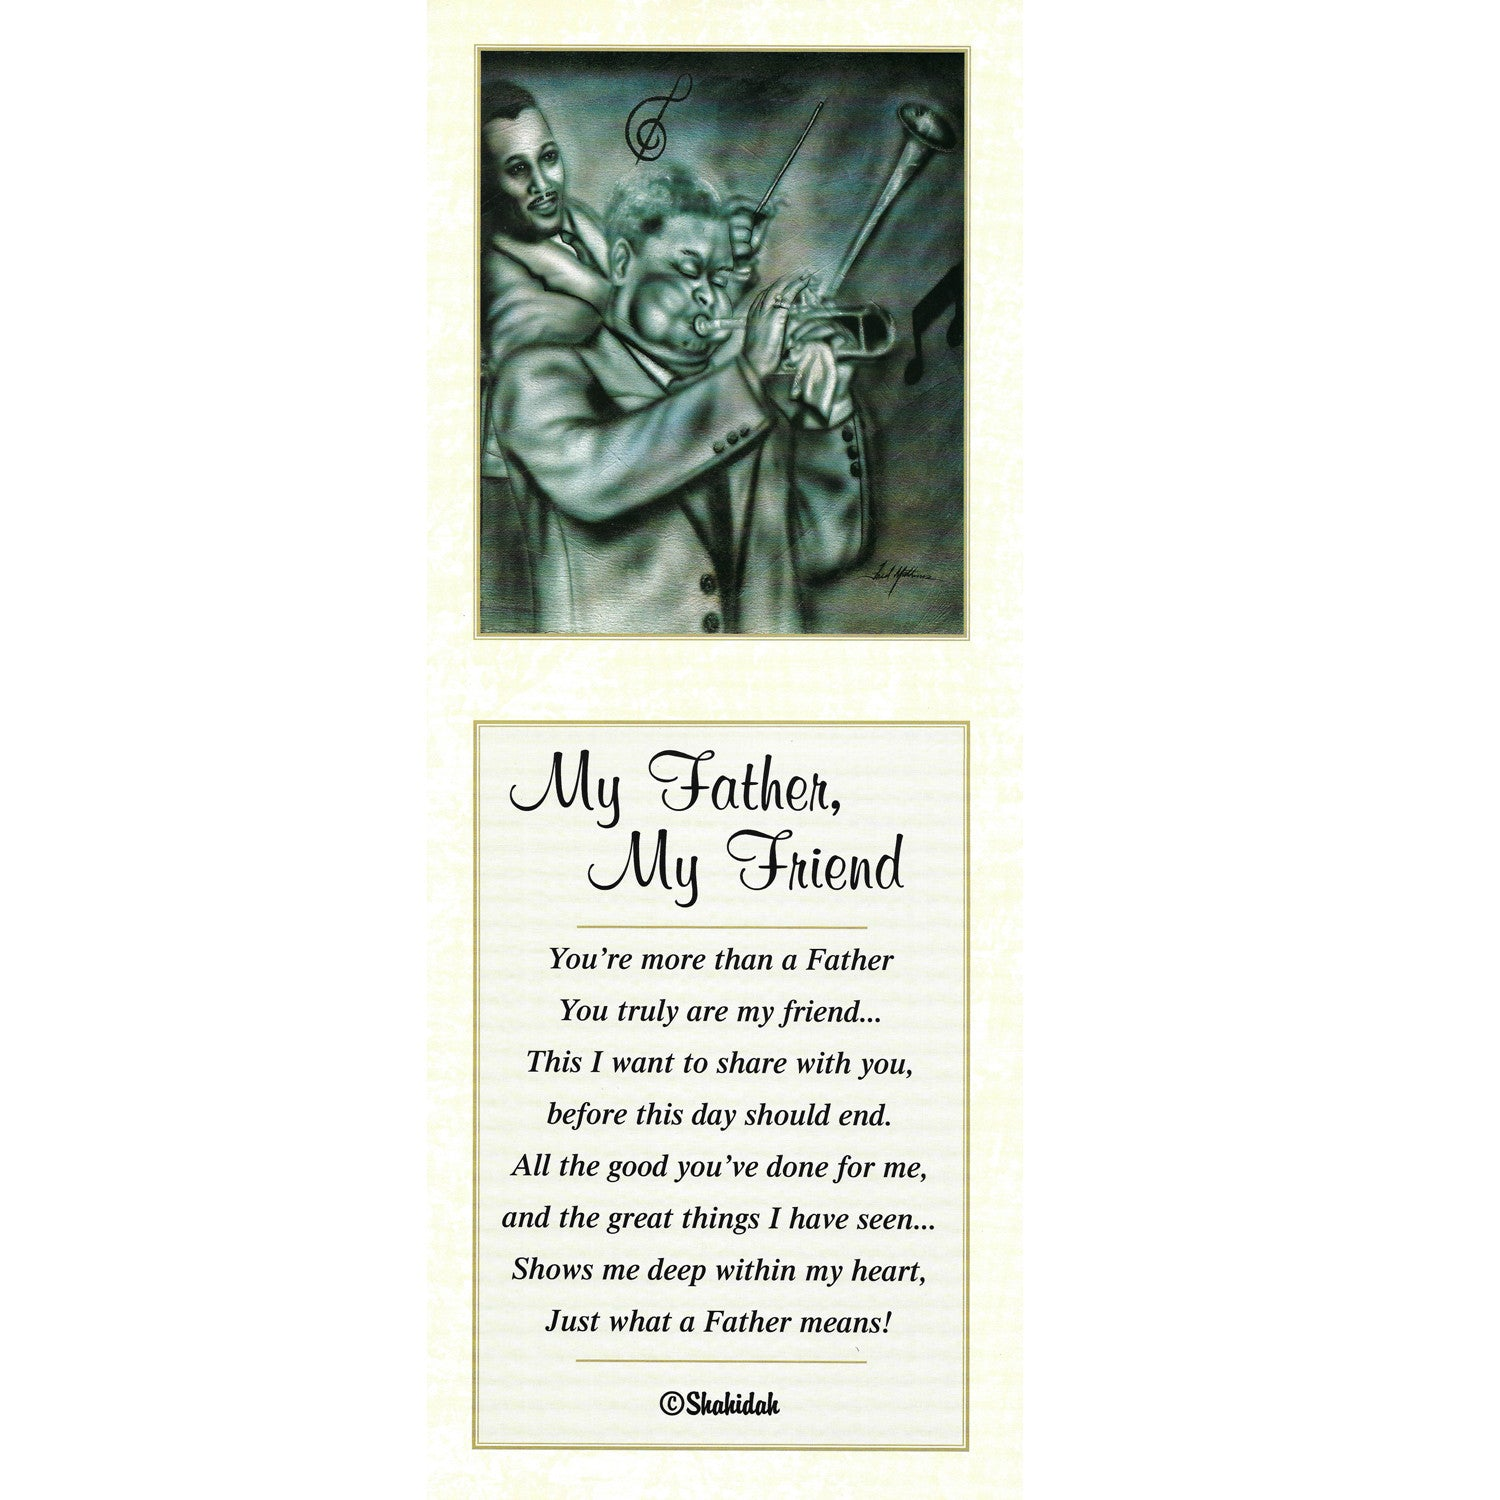 My Father, My Friend by Fred Mathews and Shahidah (Literary Art)